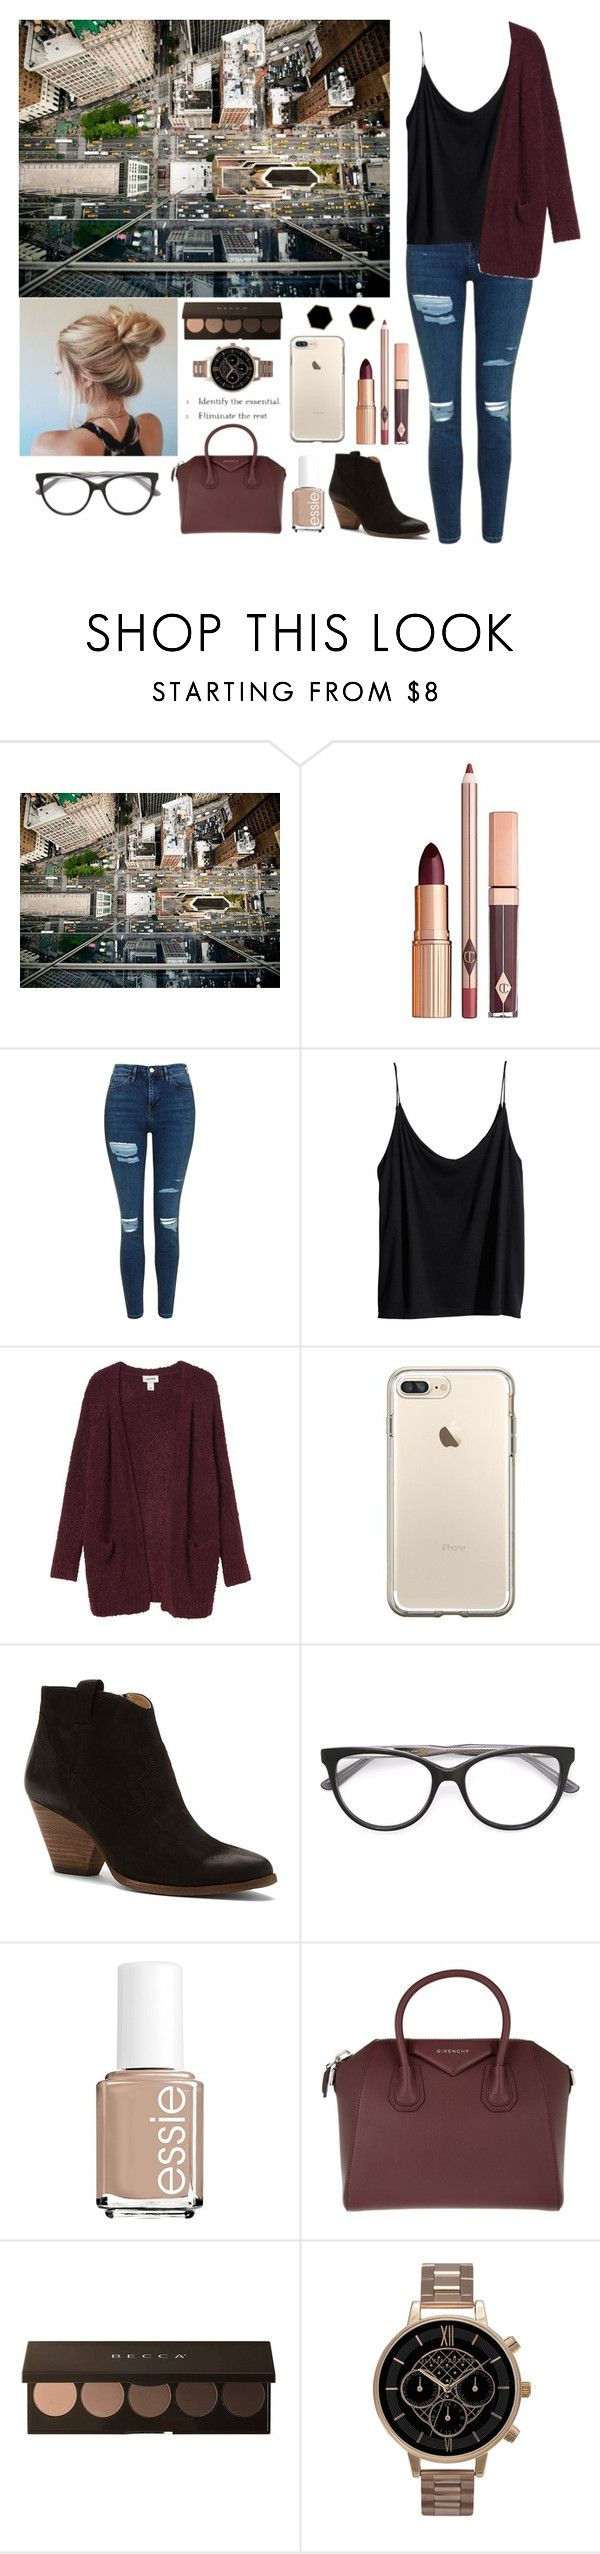 """""""Comment 😊 to be added to my tag list"""" by aeltz ❤ liked on Polyvore featuring National Geographic Home, Topshop, H&M, Monki, Frye, Essie, Givenchy, Olivia Burton and Janna Conner Designs"""